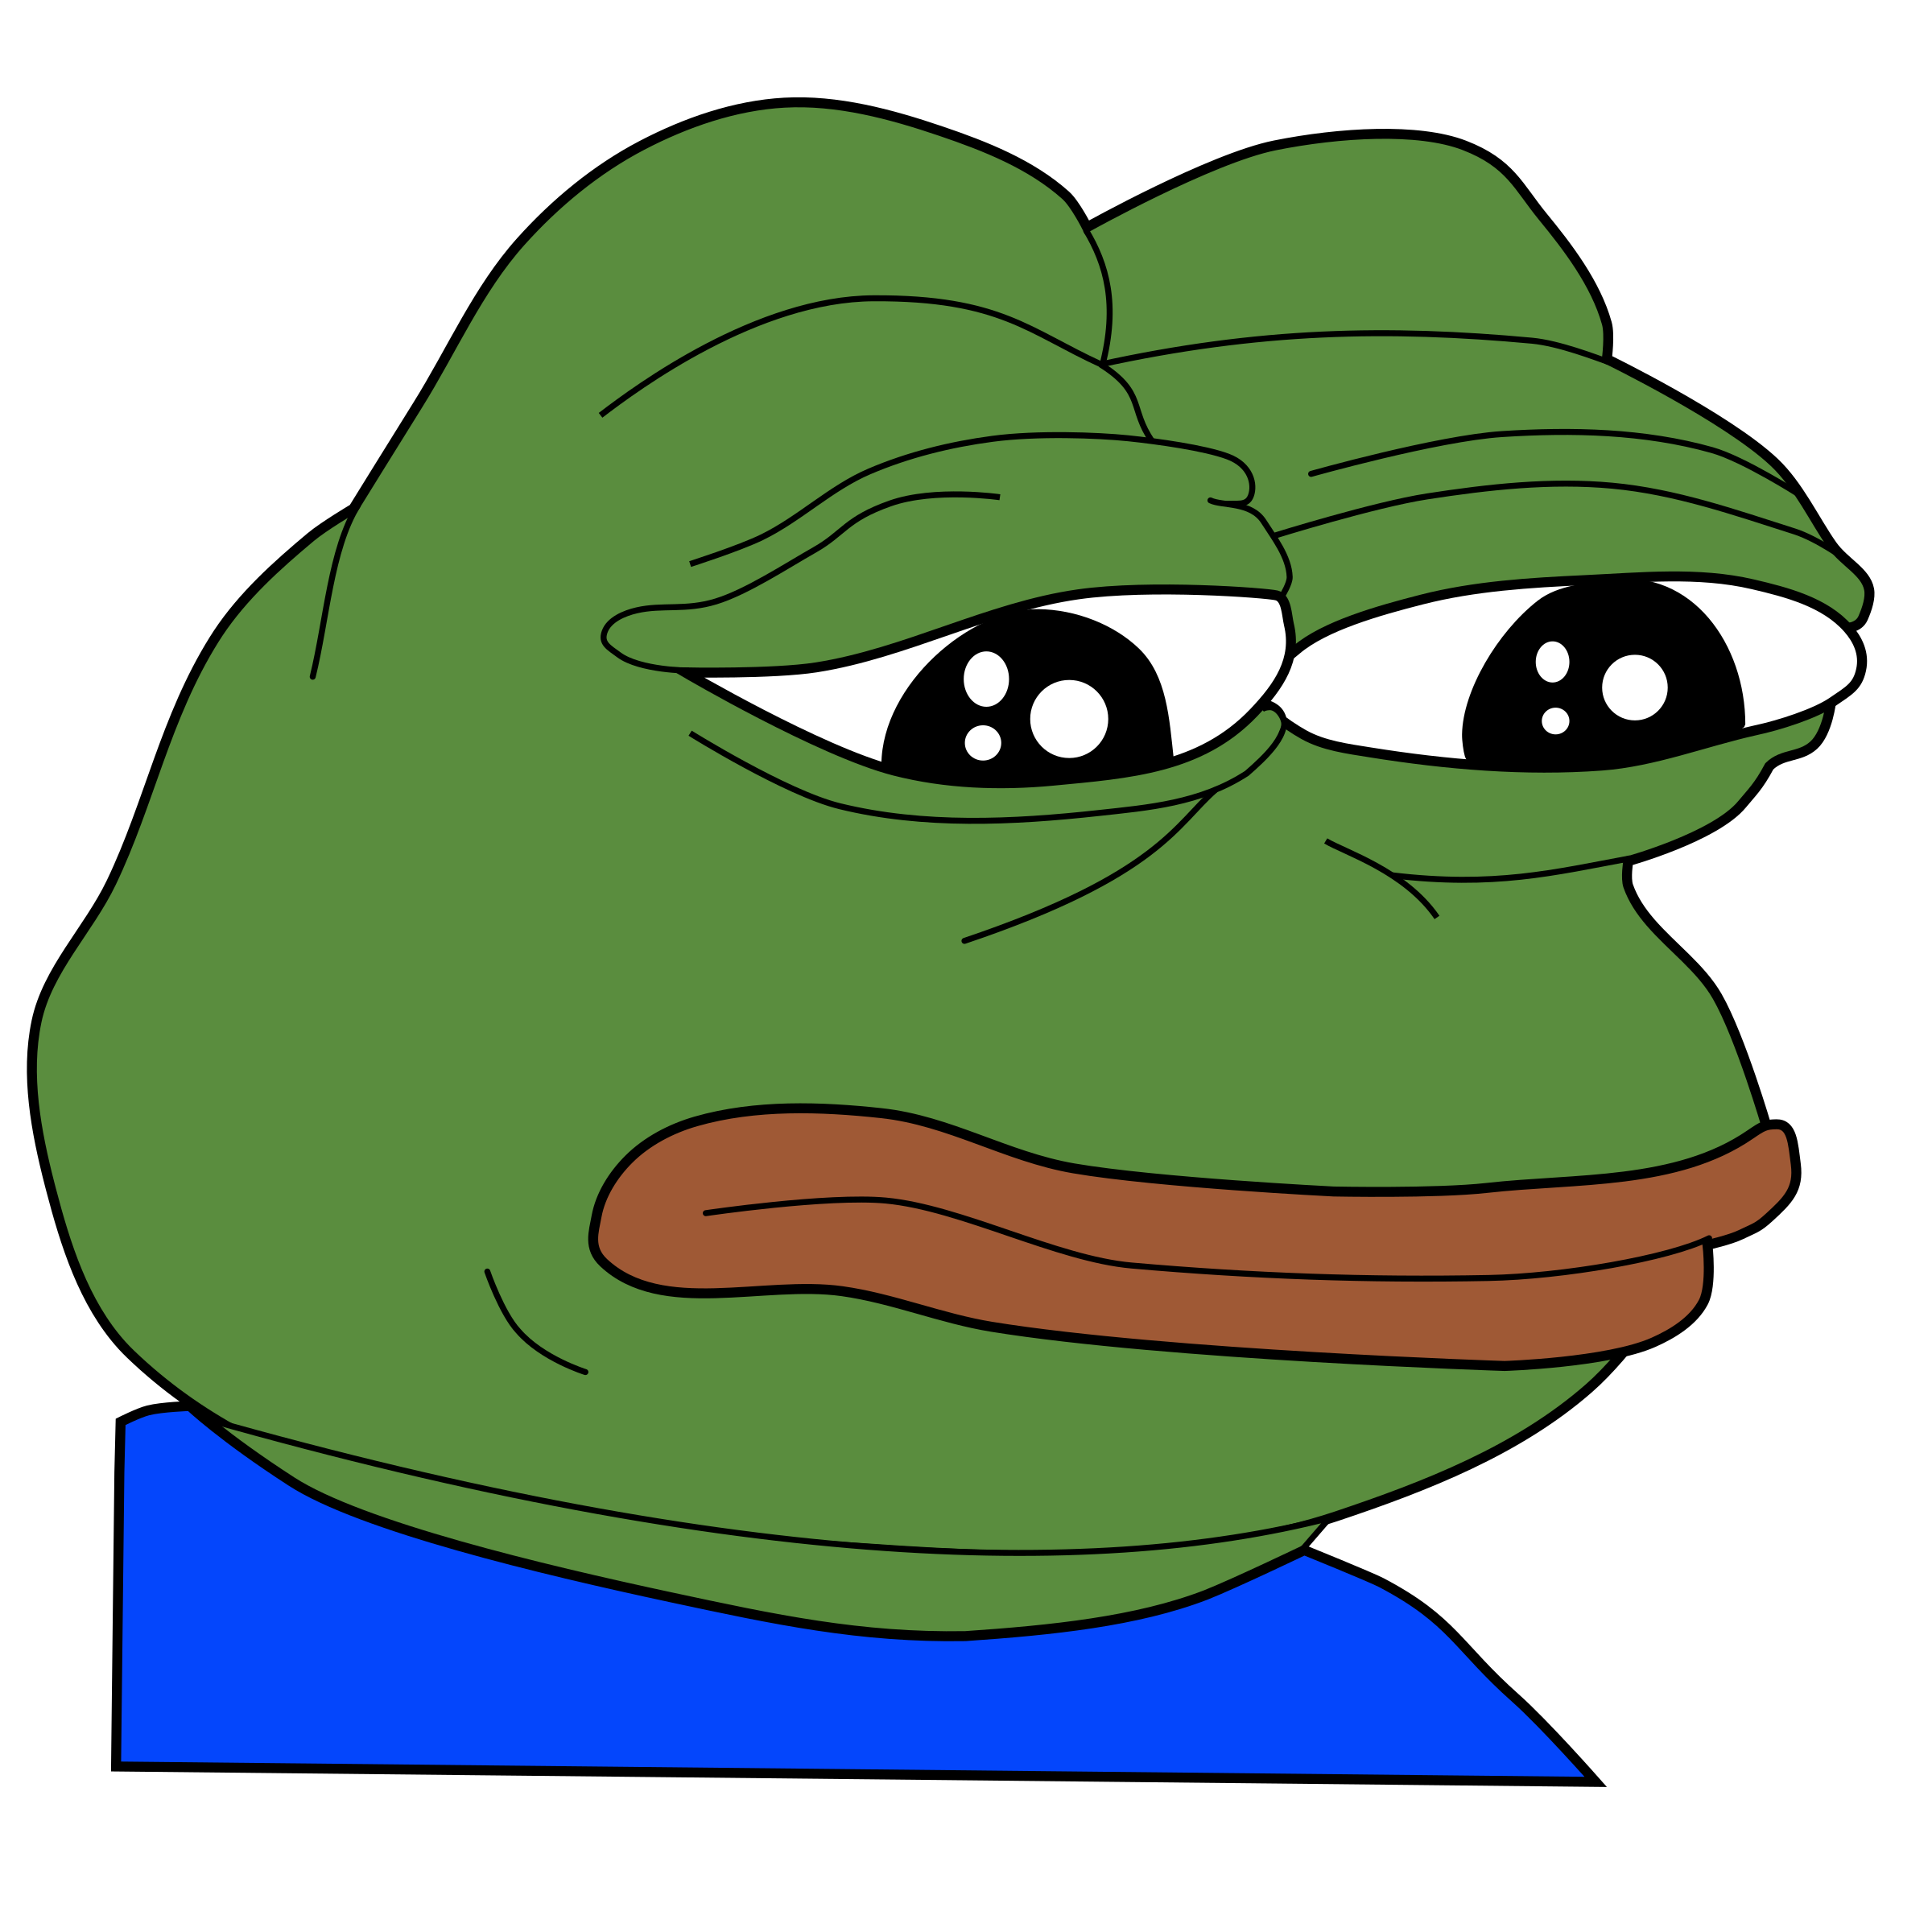 Bad clipart sad. Frog feels man meme